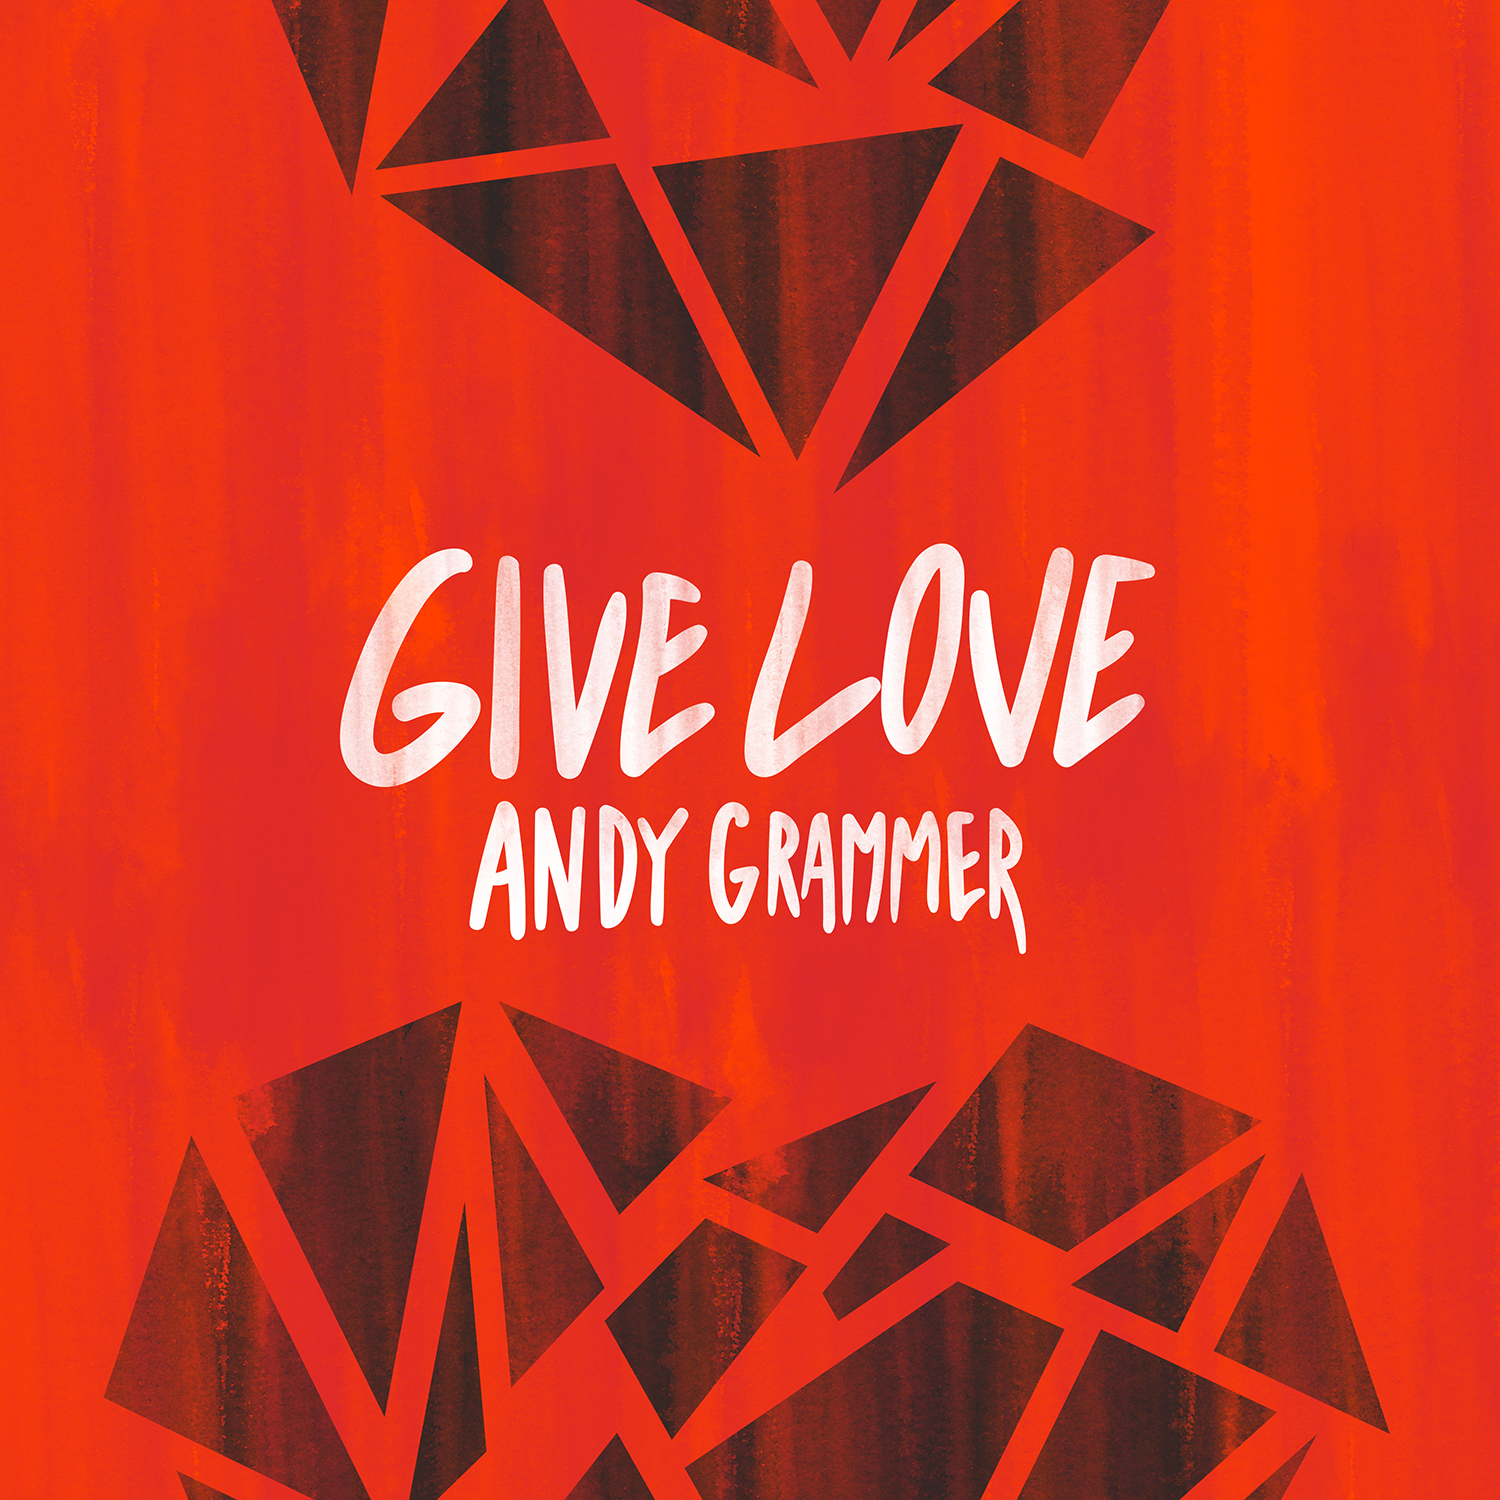 AG-Give-Love-Cover-Final.jpg